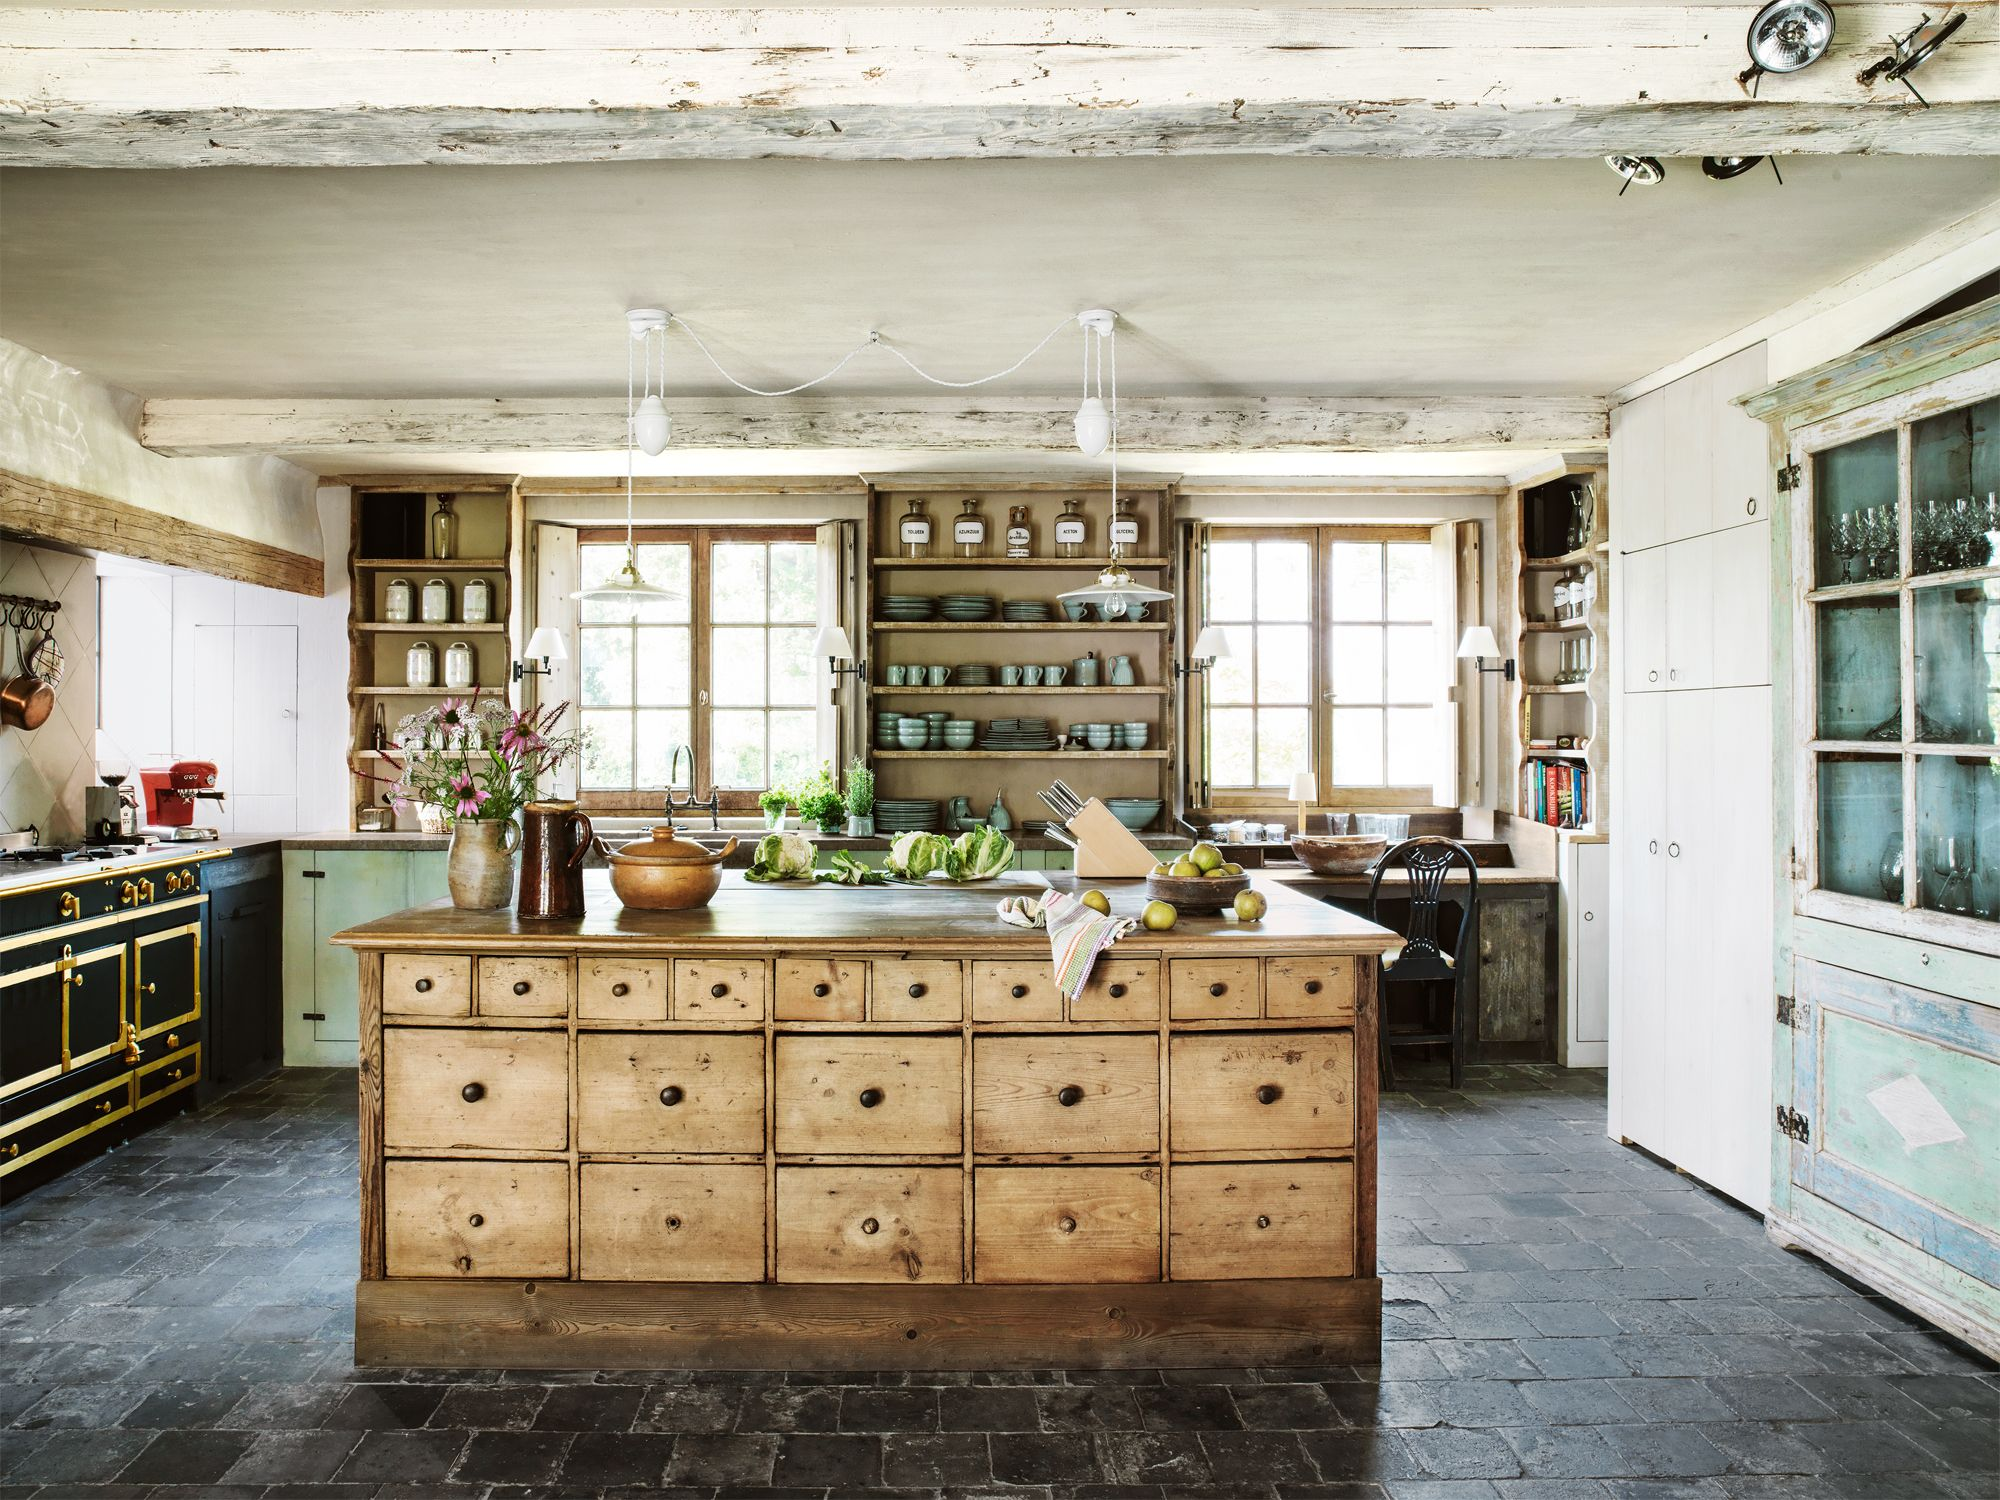 farmhouse kitchen cabinets kids play kitchens 24 style rustic decor ideas for